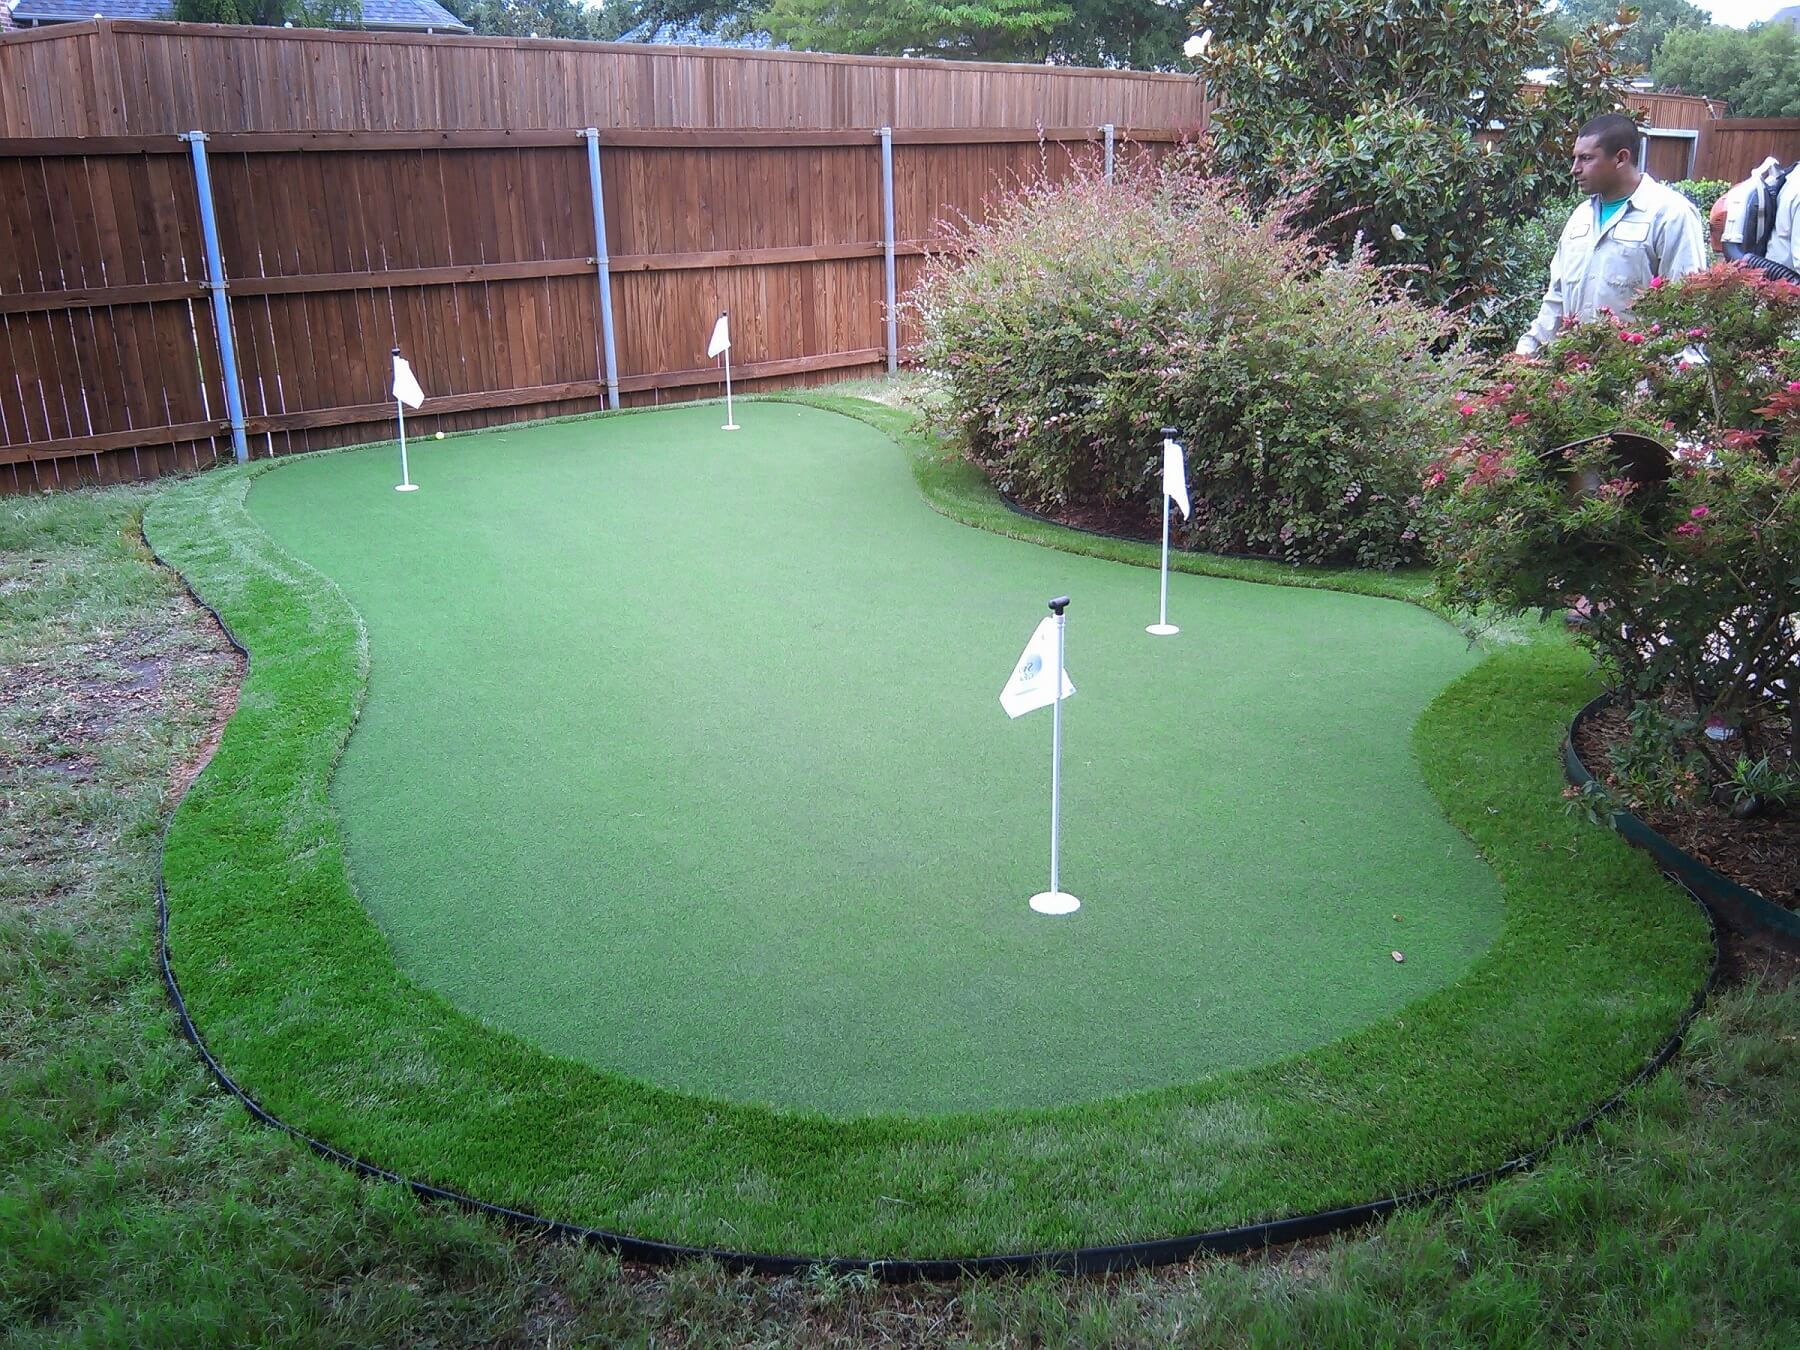 Cedar Park Putting Greens - Texas Fake Grass